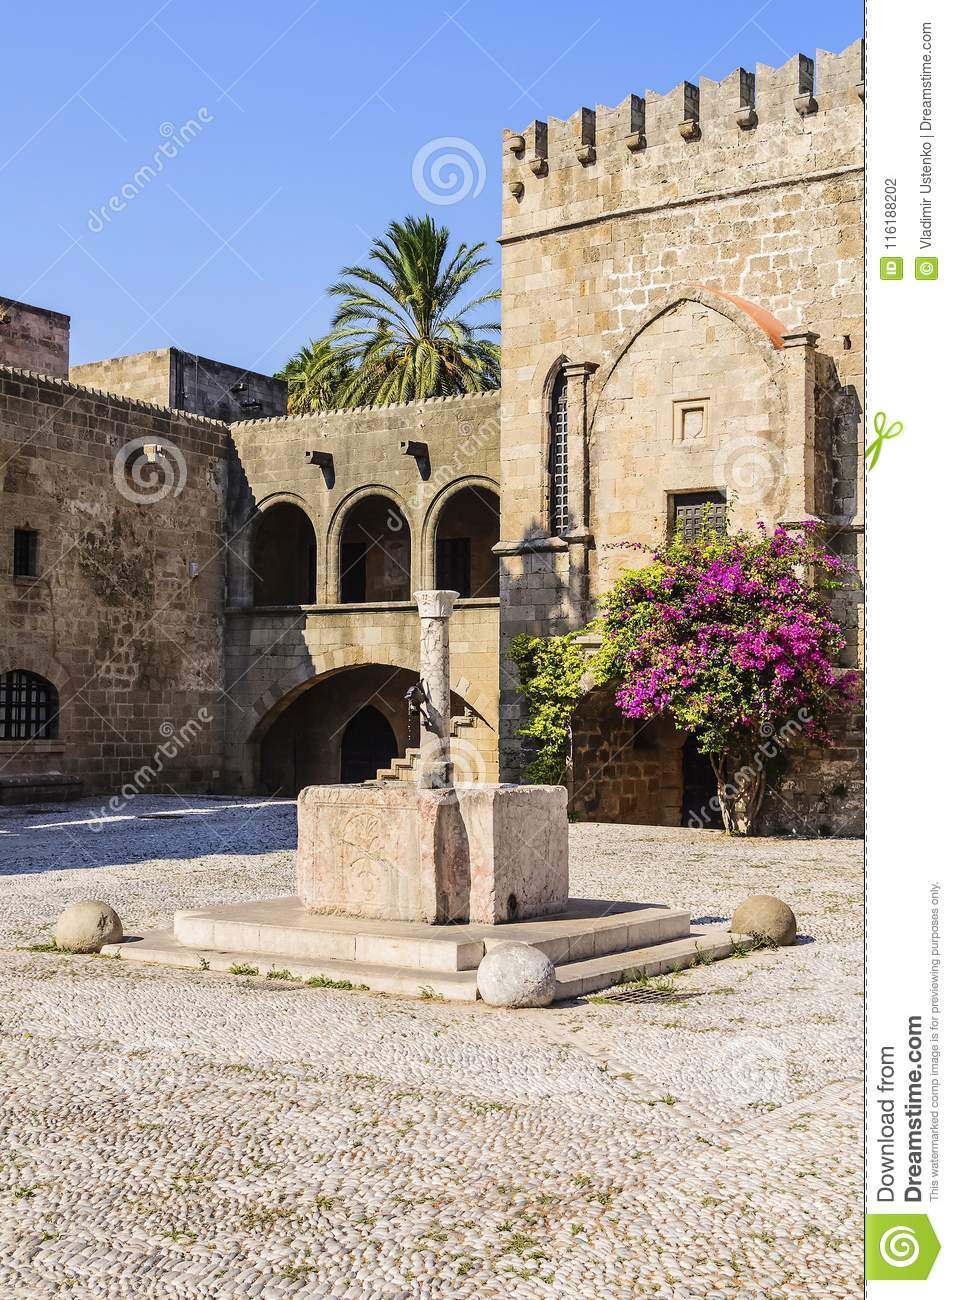 Source of water on the background of the knights Hospitallers in the square Argirokastro. Rhodes Old Town, Greece